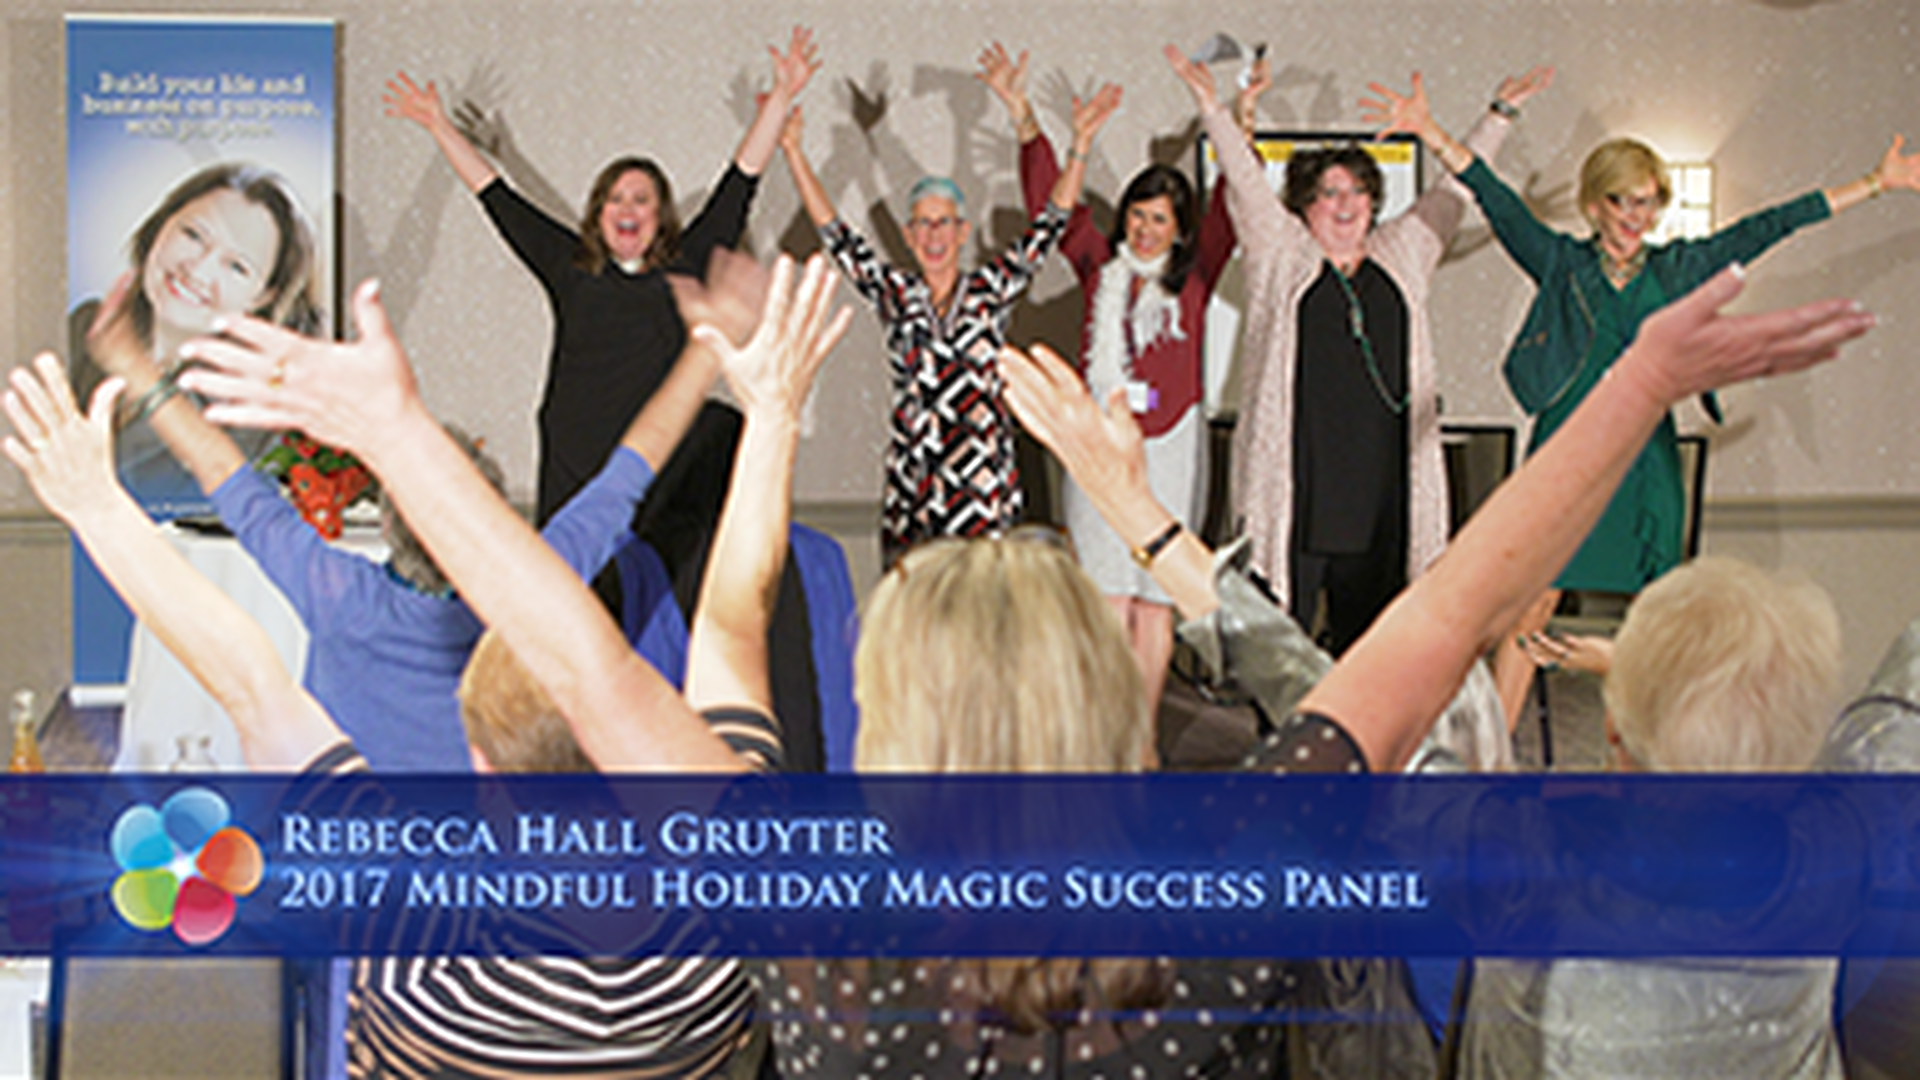 2017 Mindful Holiday Magic Success Panel Presentation